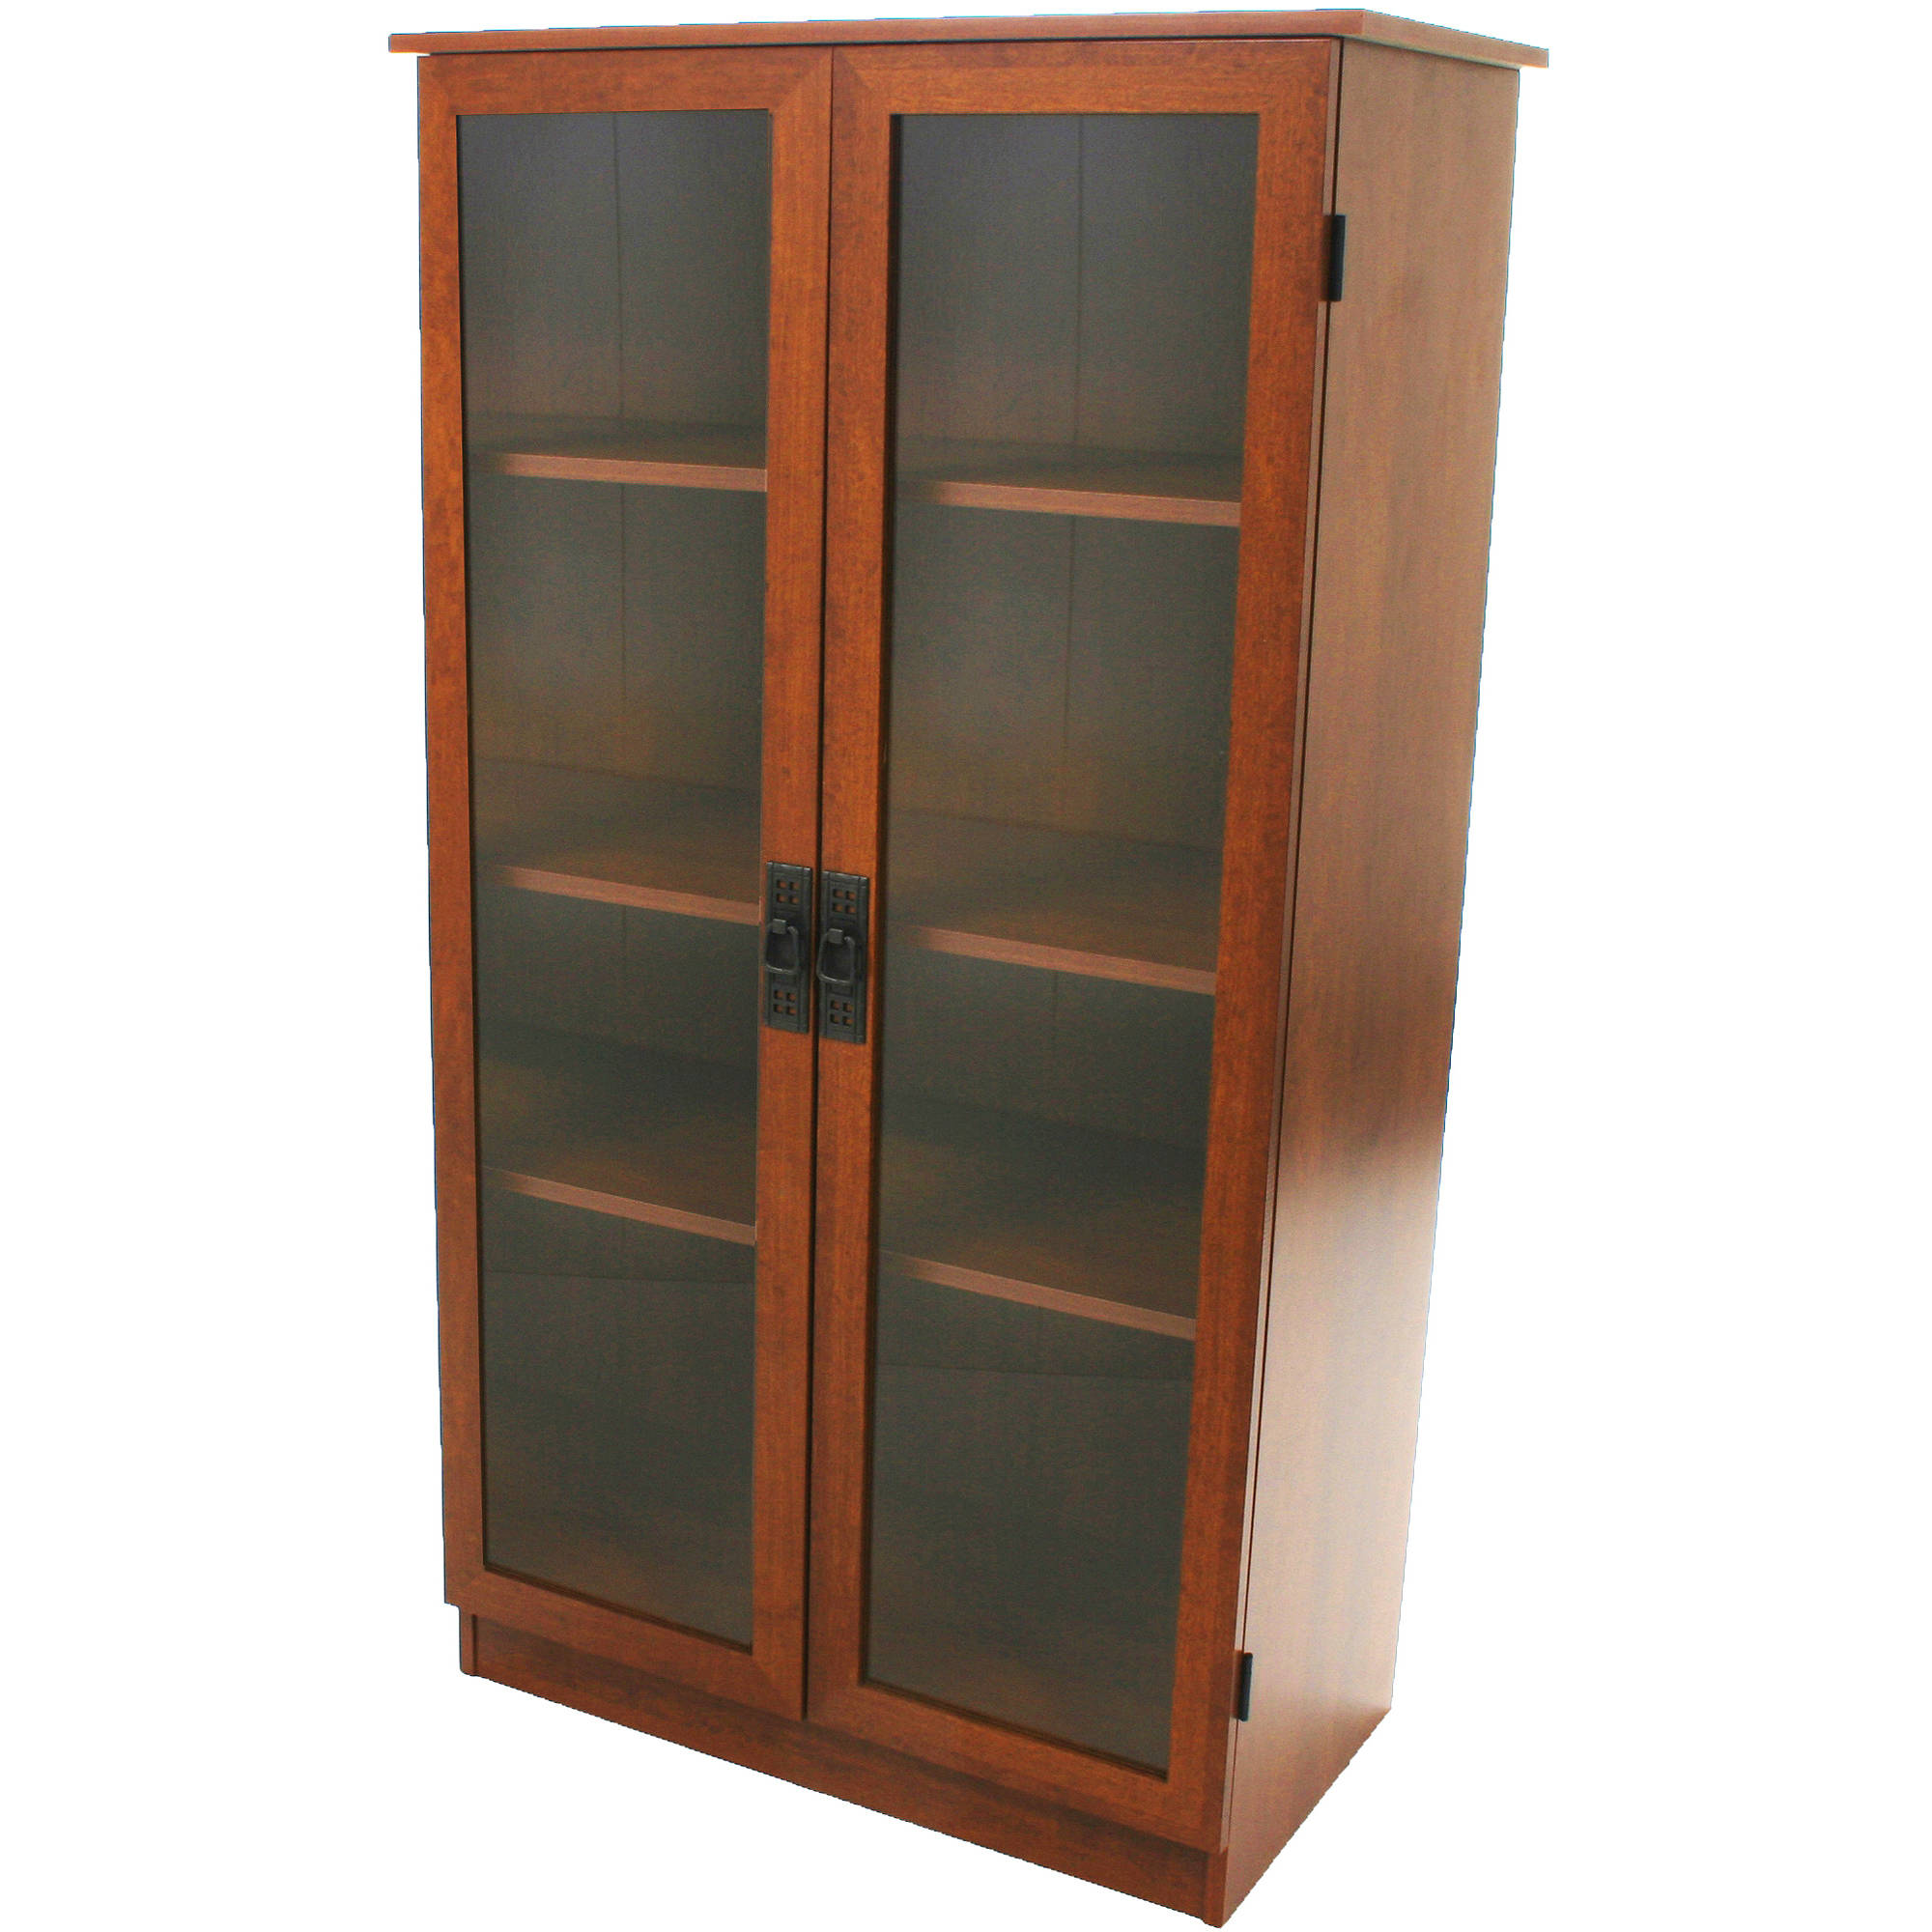 cabinets for storage. heirloom storage cabinet with 4 shelves, multiple finishes cabinets for e